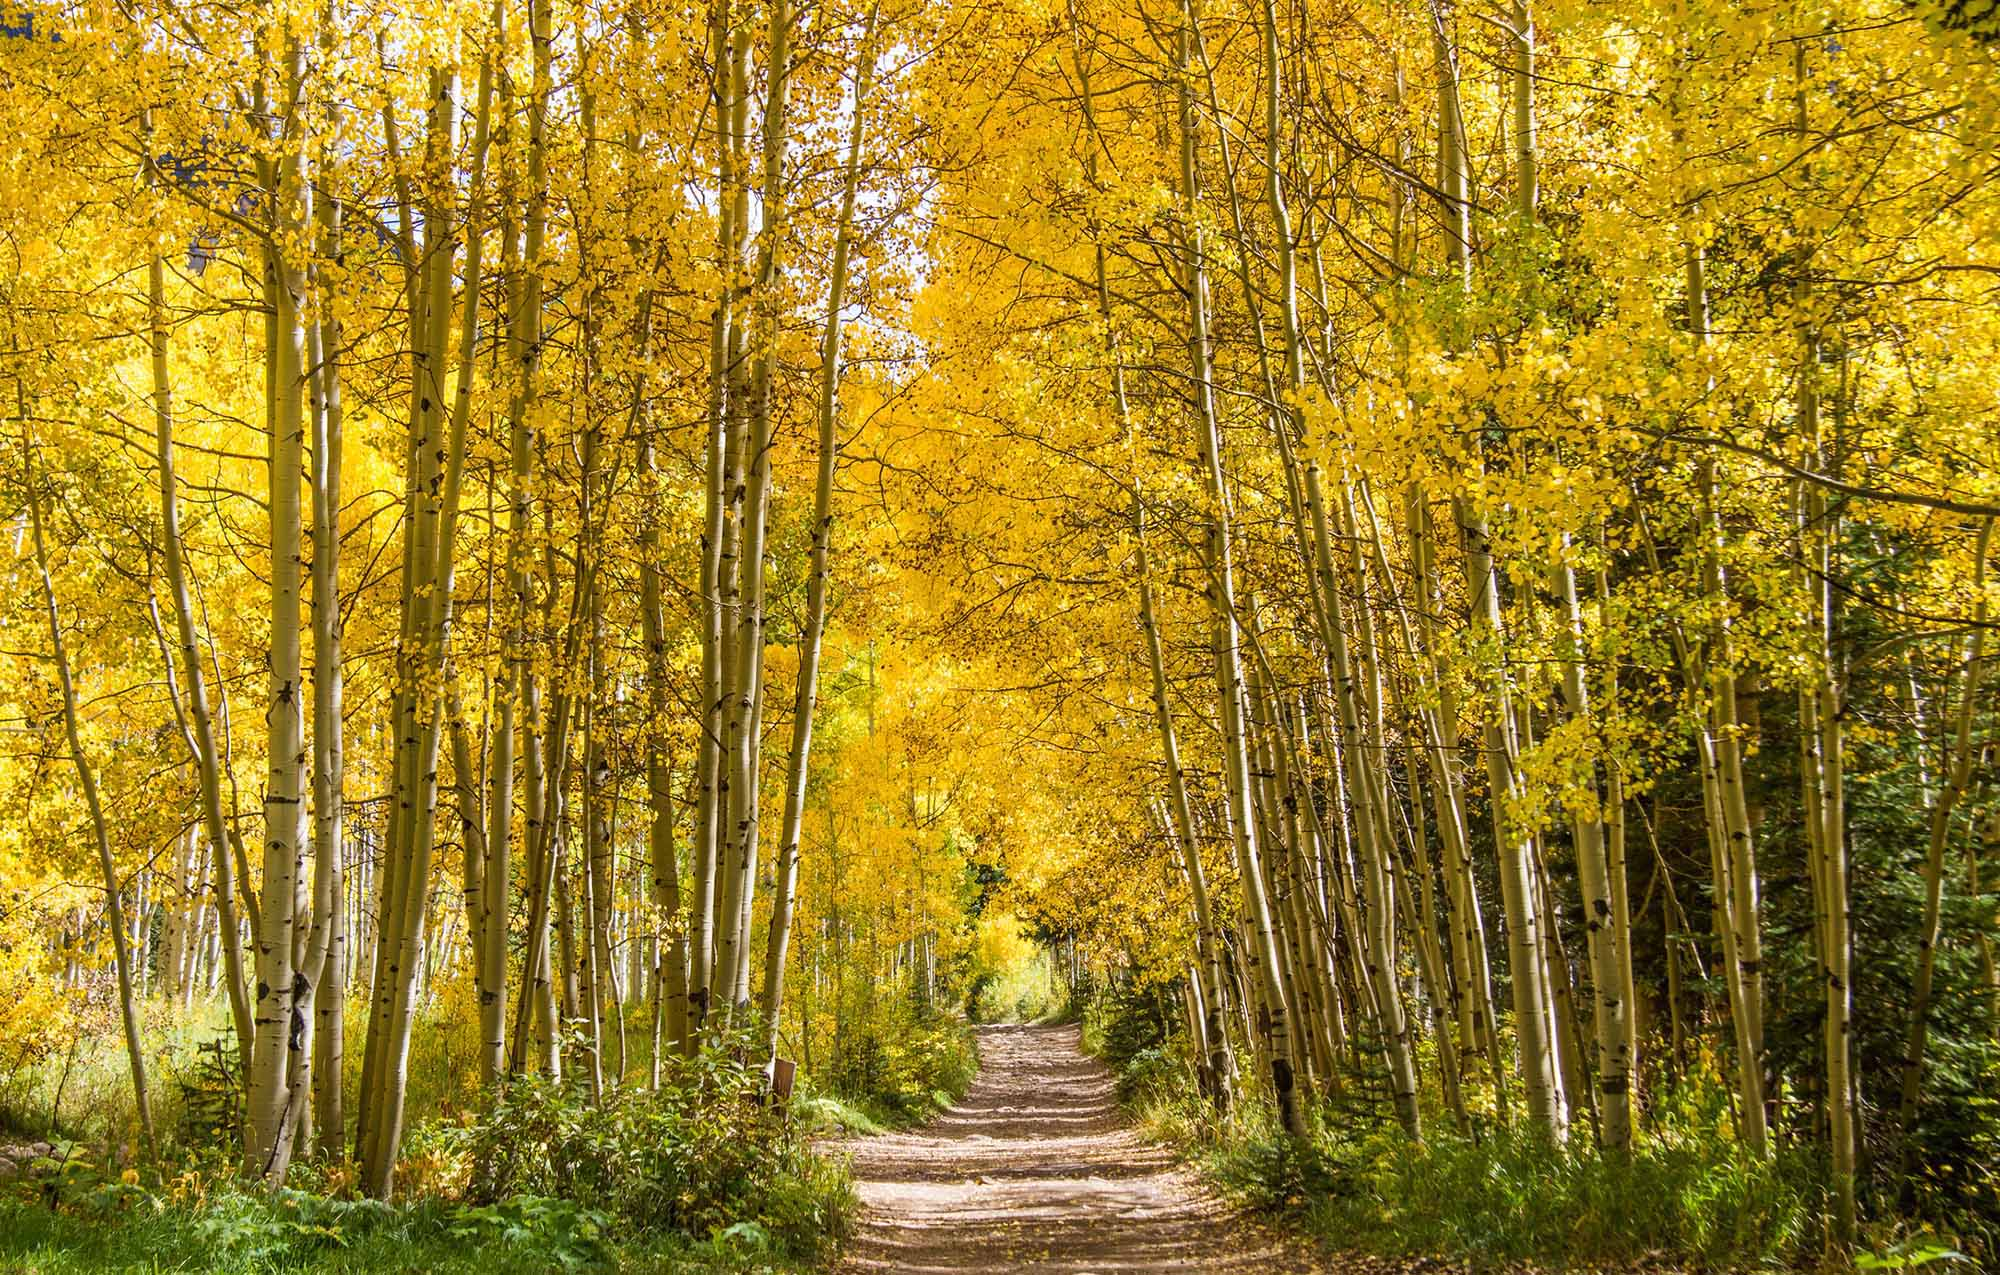 Blazing aspen trees form tower over a trail.